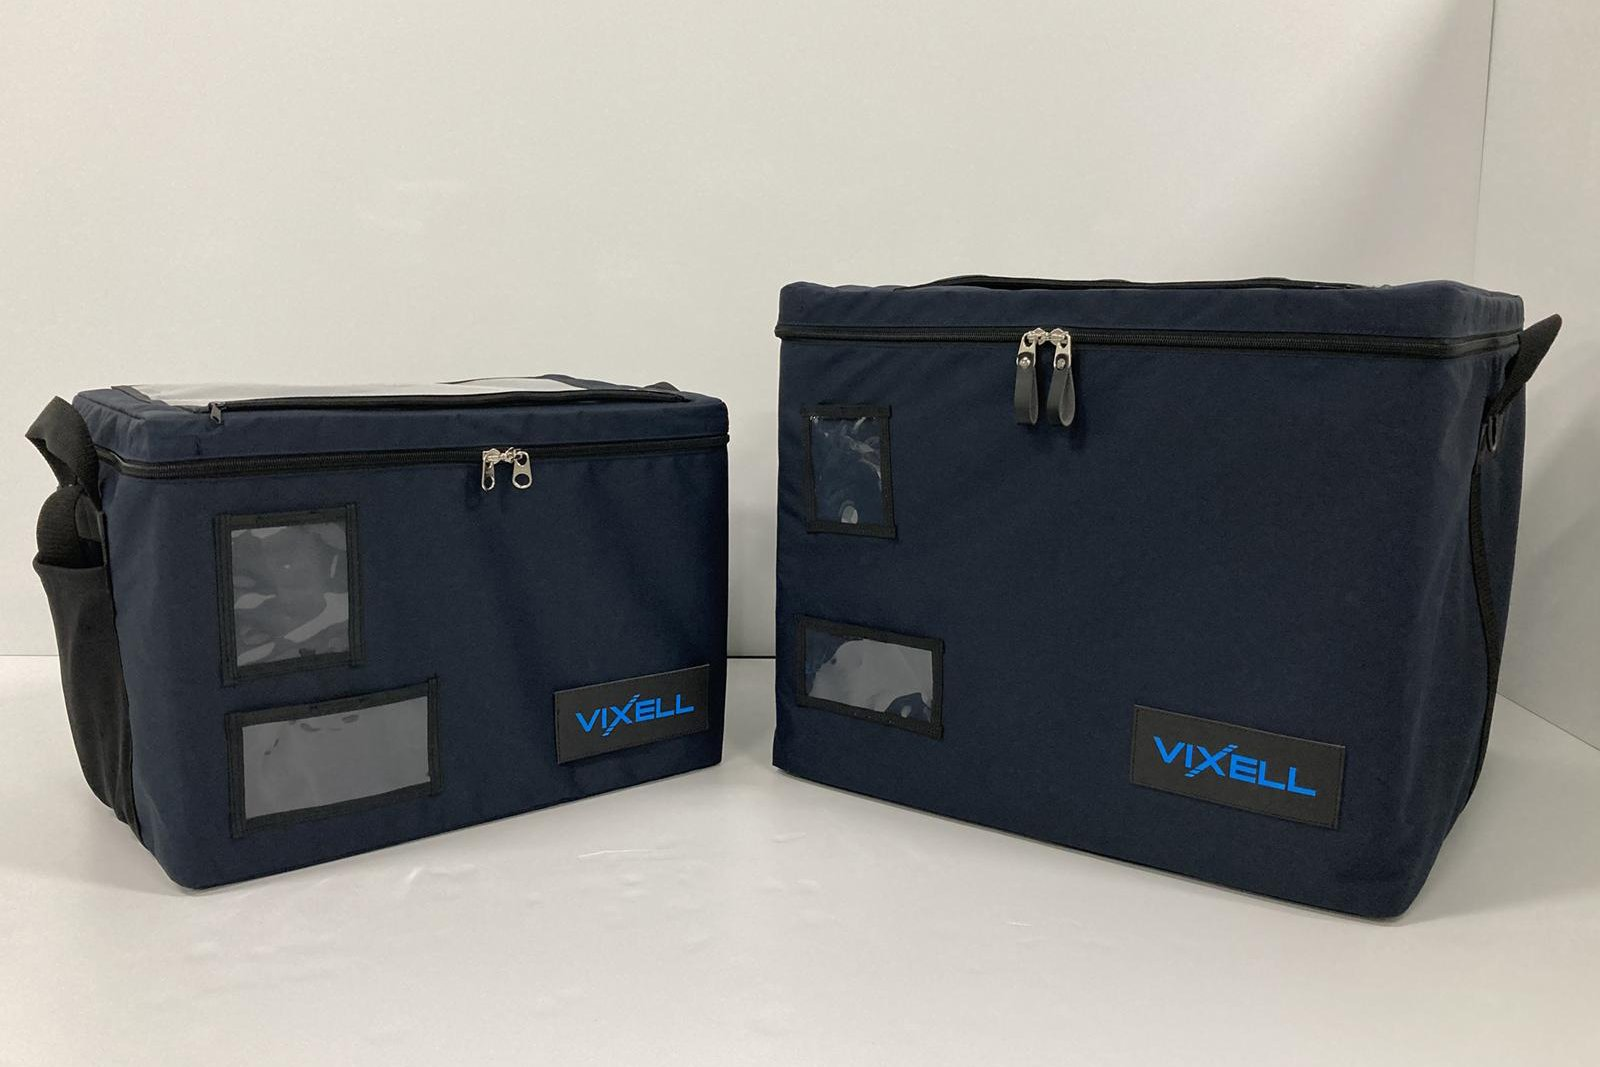 Photo: VIXELL cooling boxes that are currently available in two sizes: 57 liters (left), 120 liters (right).